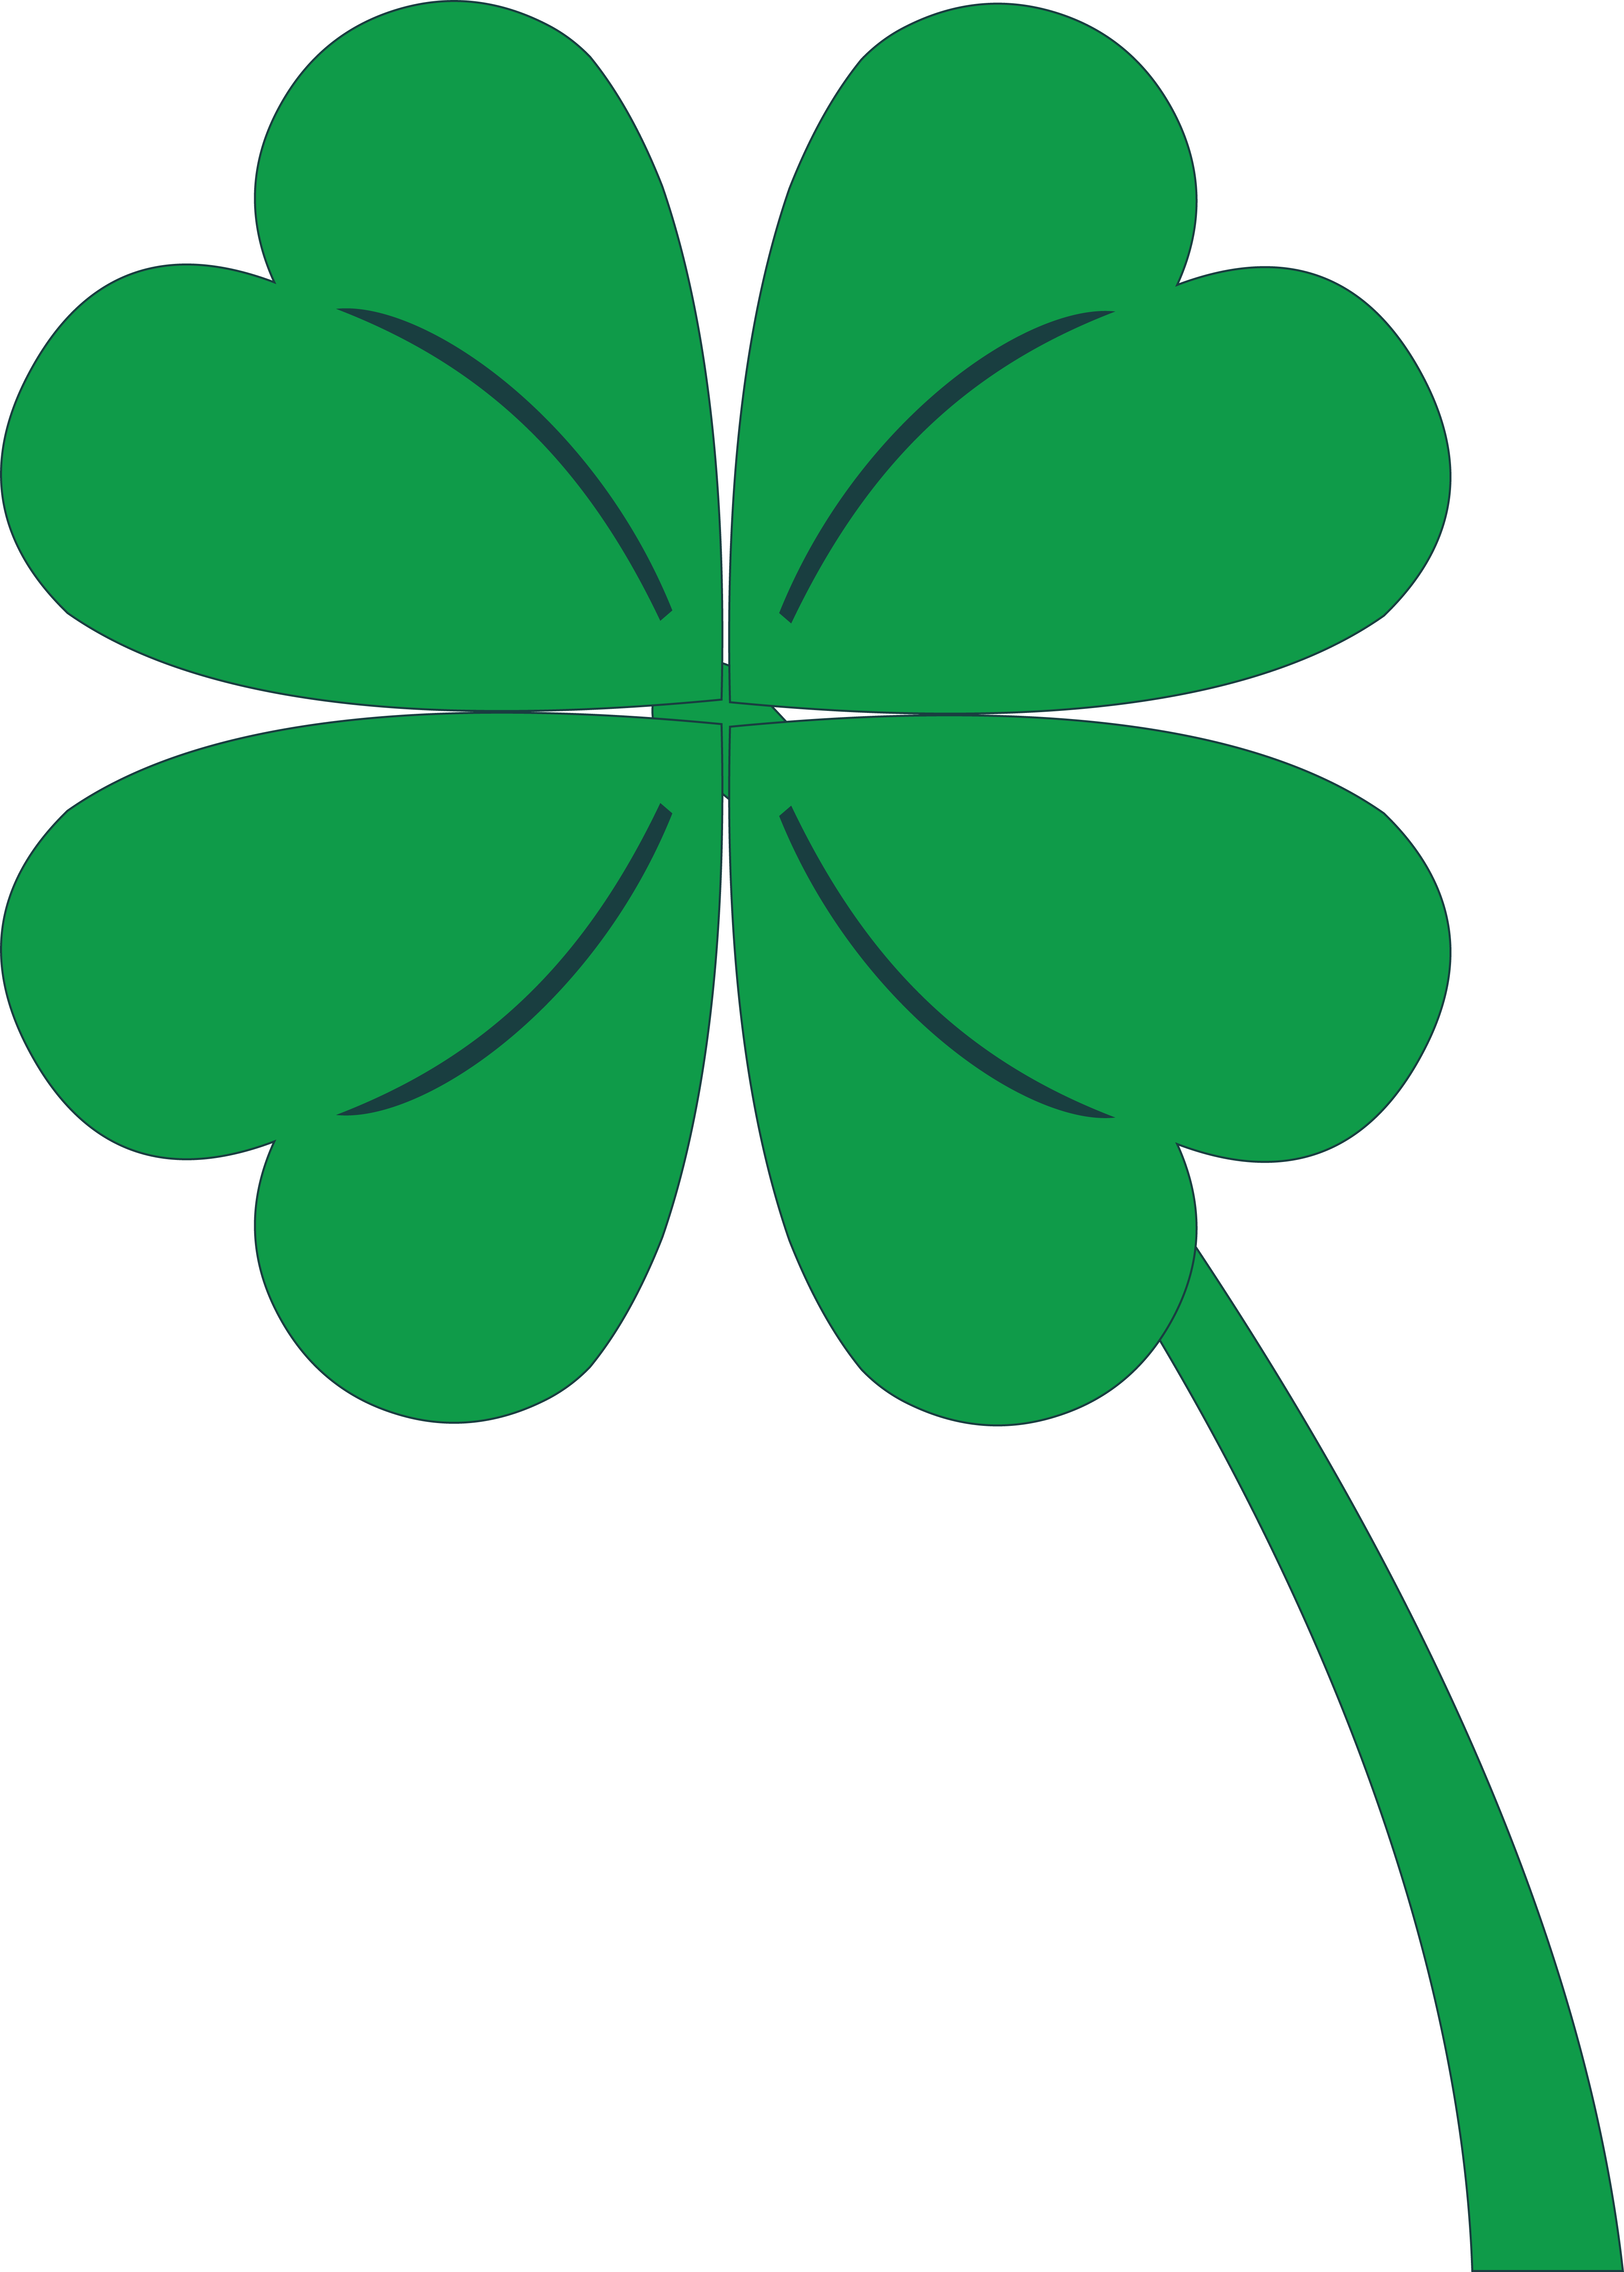 Clover clipart leaft. Three leaf at getdrawings